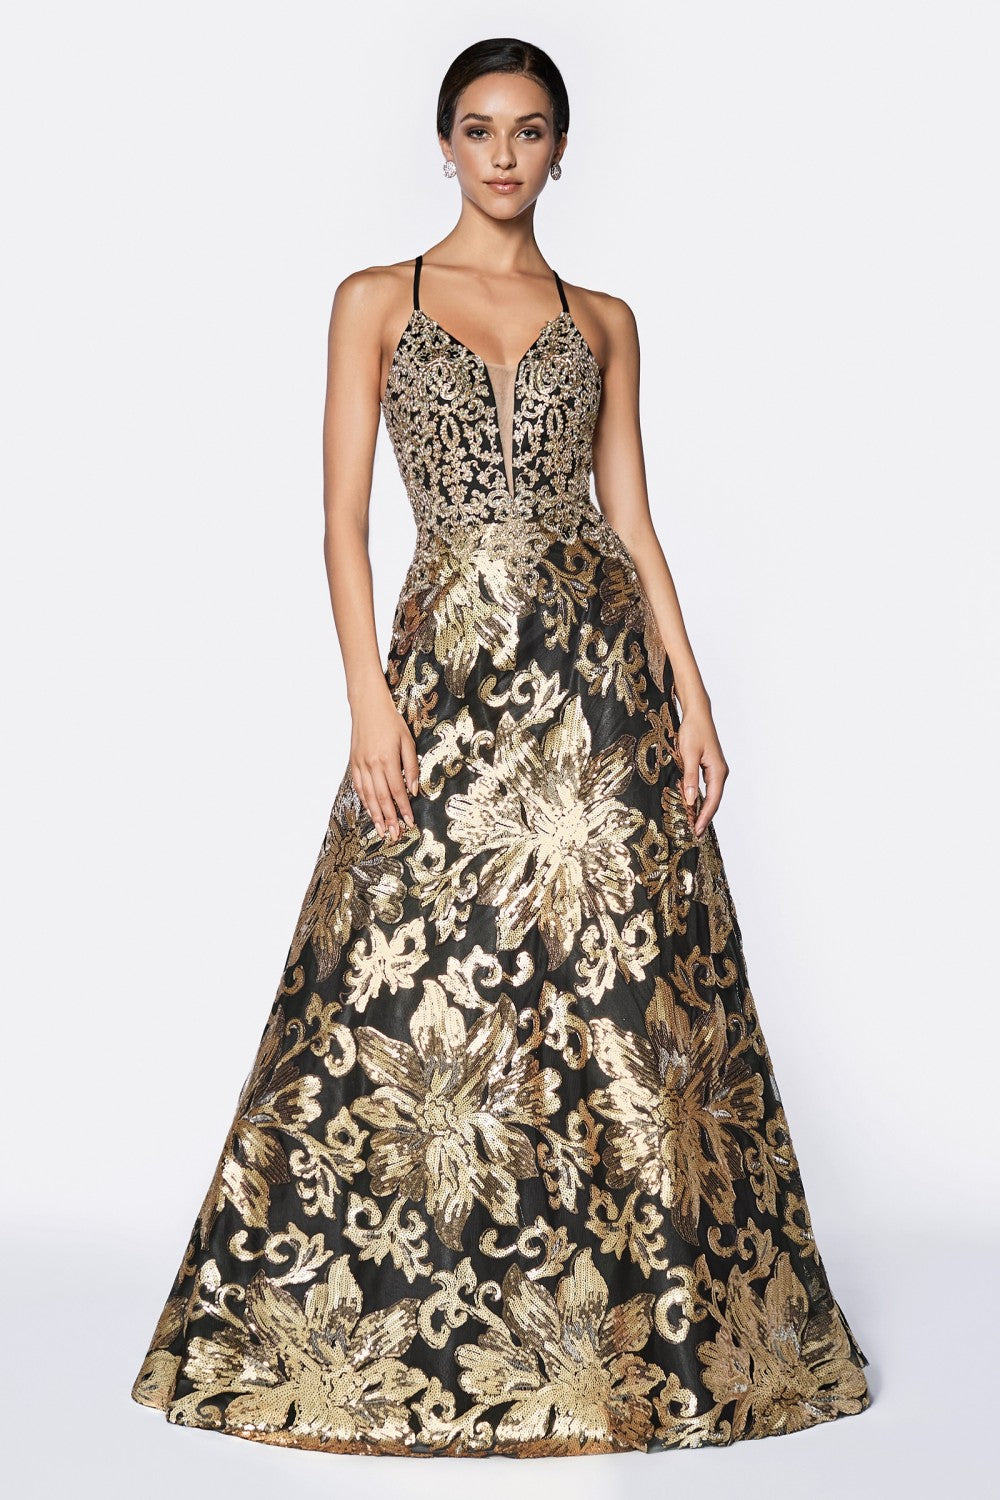 A-Line Sequin Ballgown With Deep Plunge Neckline And Criss Cross Back